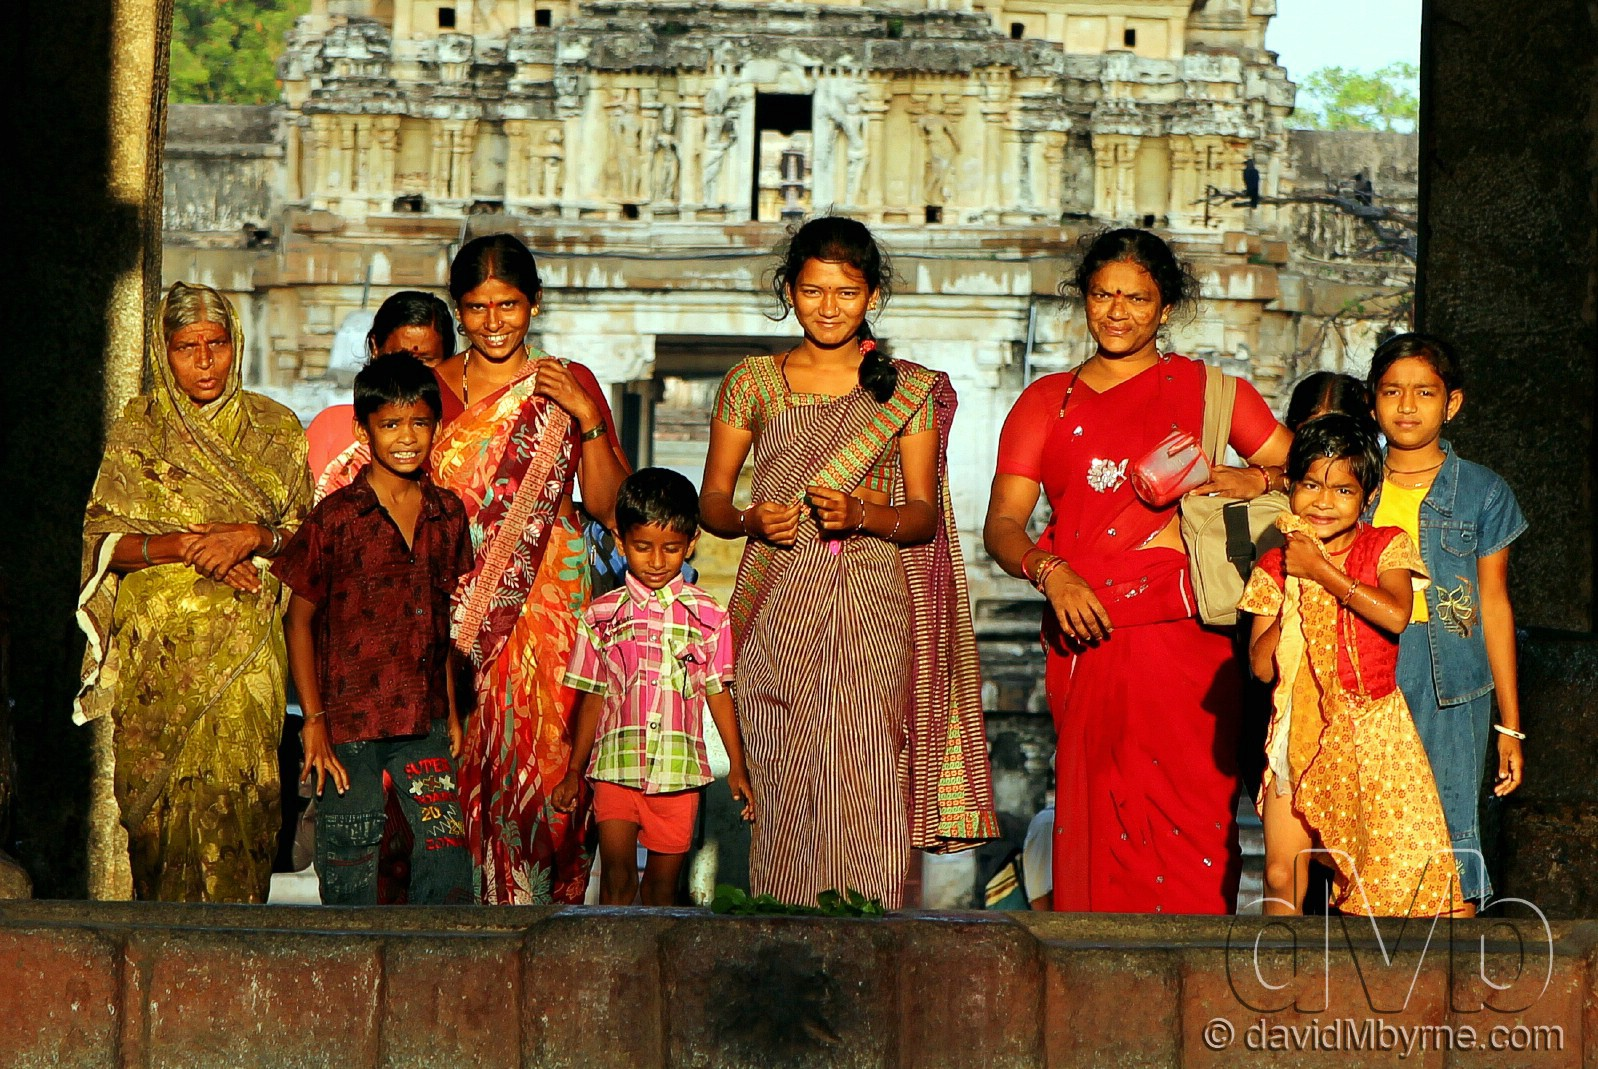 People India People Of India In Pictures Travel Blog Theplanetd